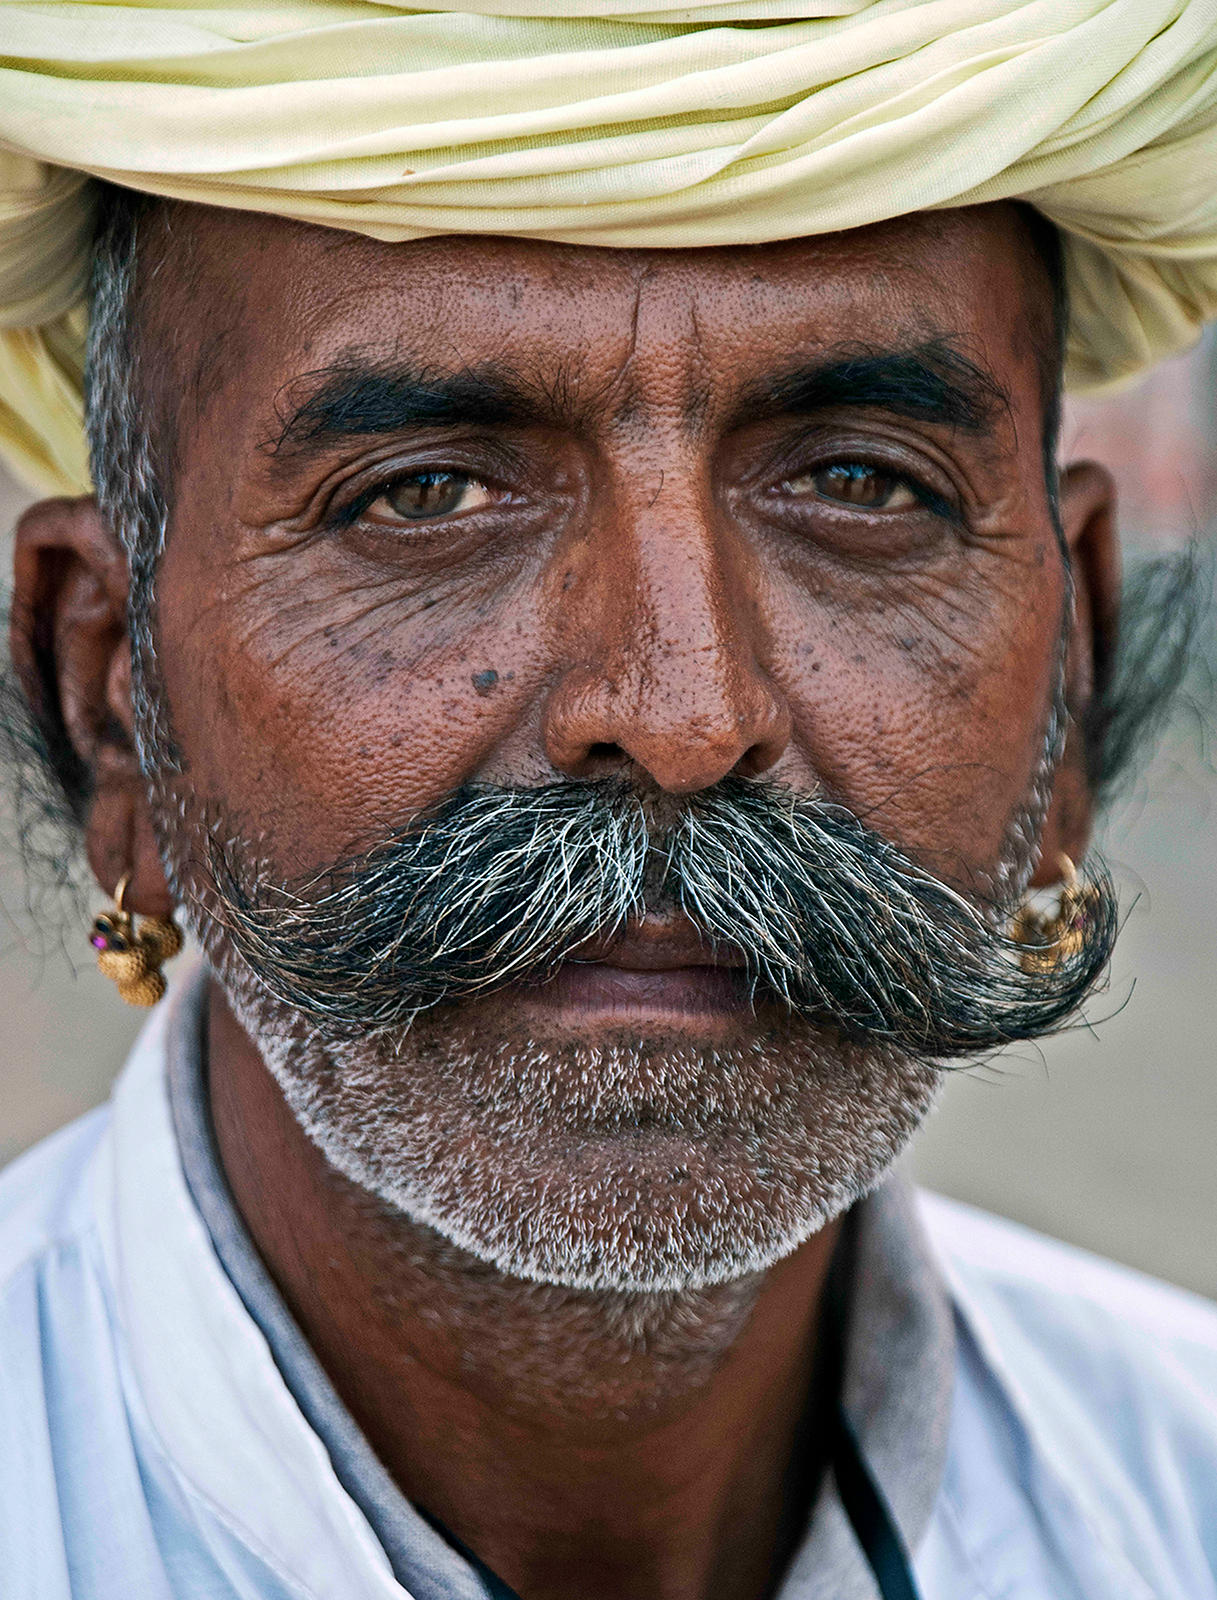 Portrait of a Rural Rajasthani Man in a Turban